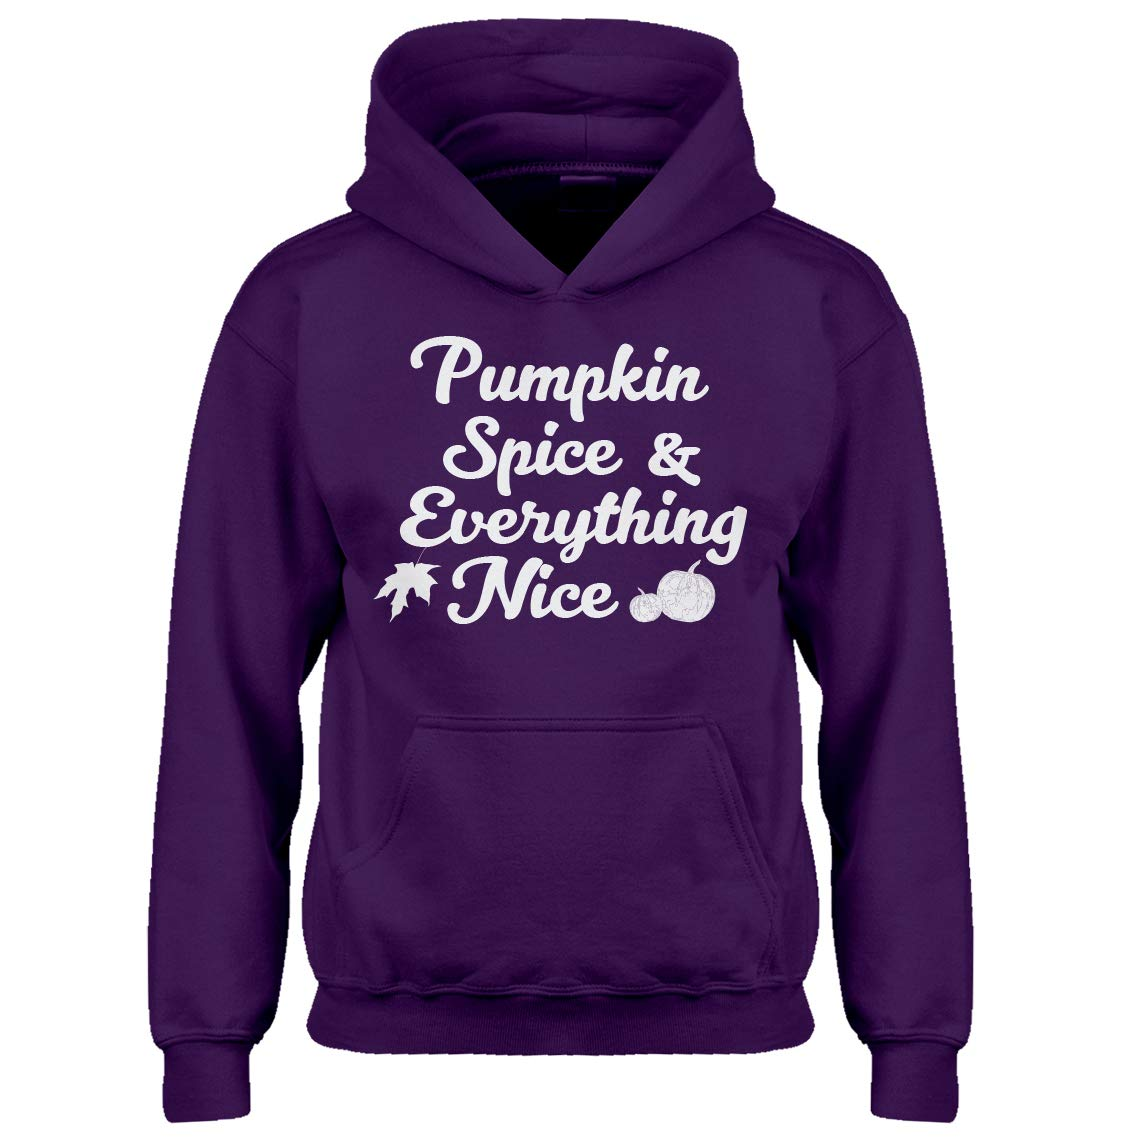 Indica Plateau Youth Pumpkin Spice and Everything Nice Kids Hoodie